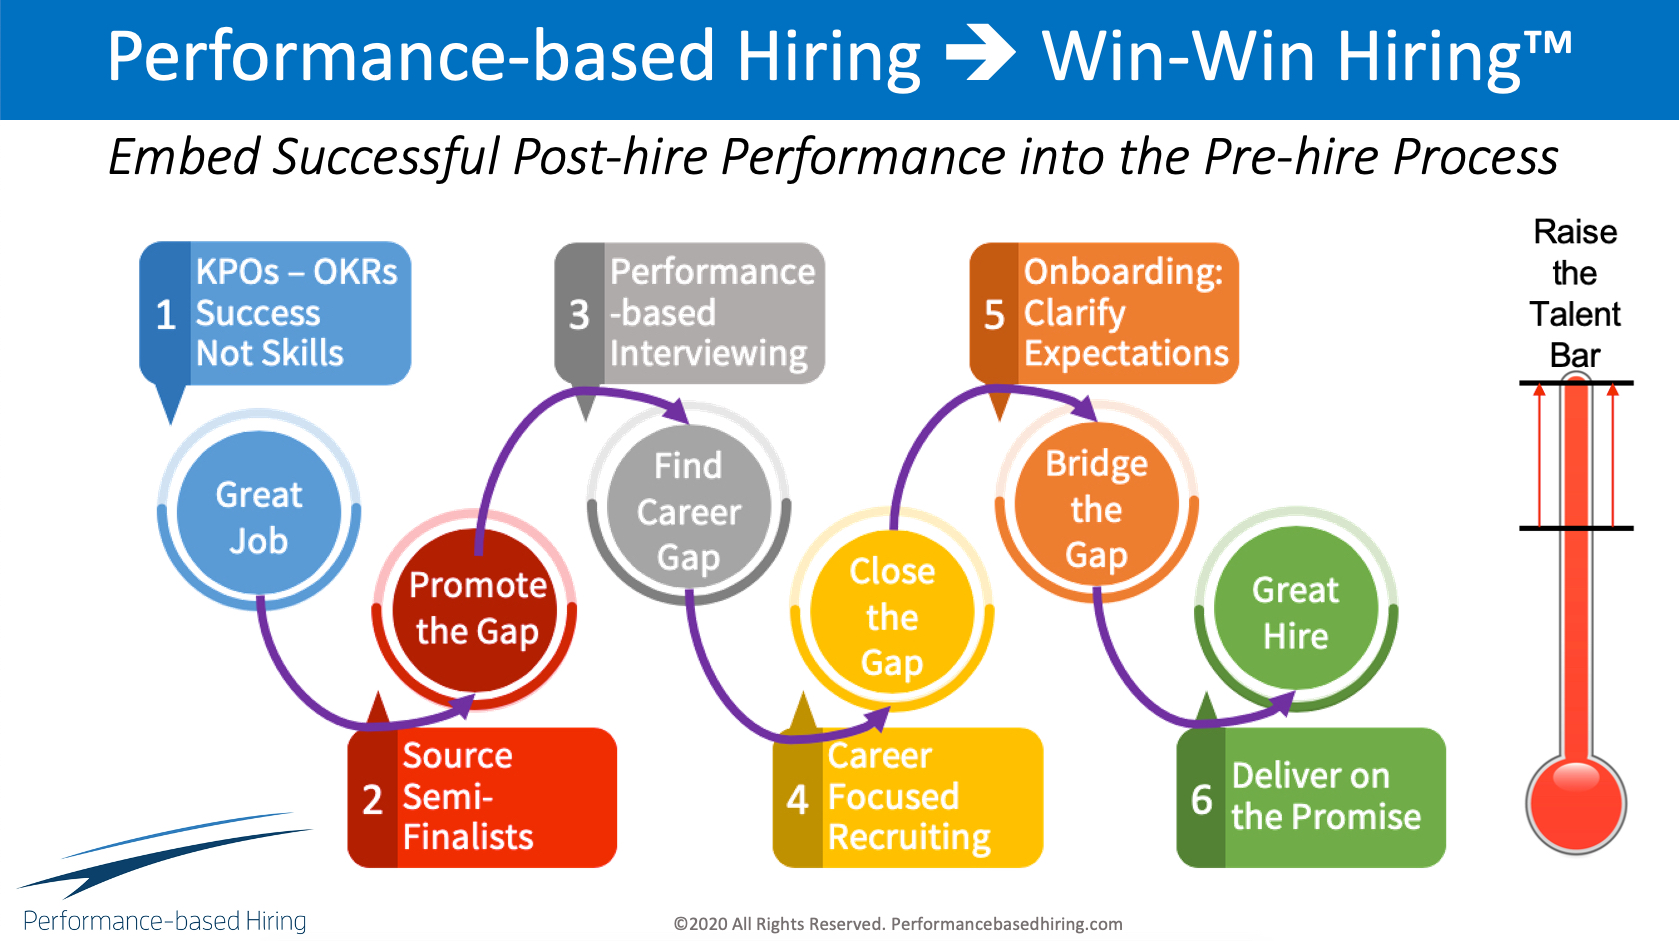 win-win hiring graphic